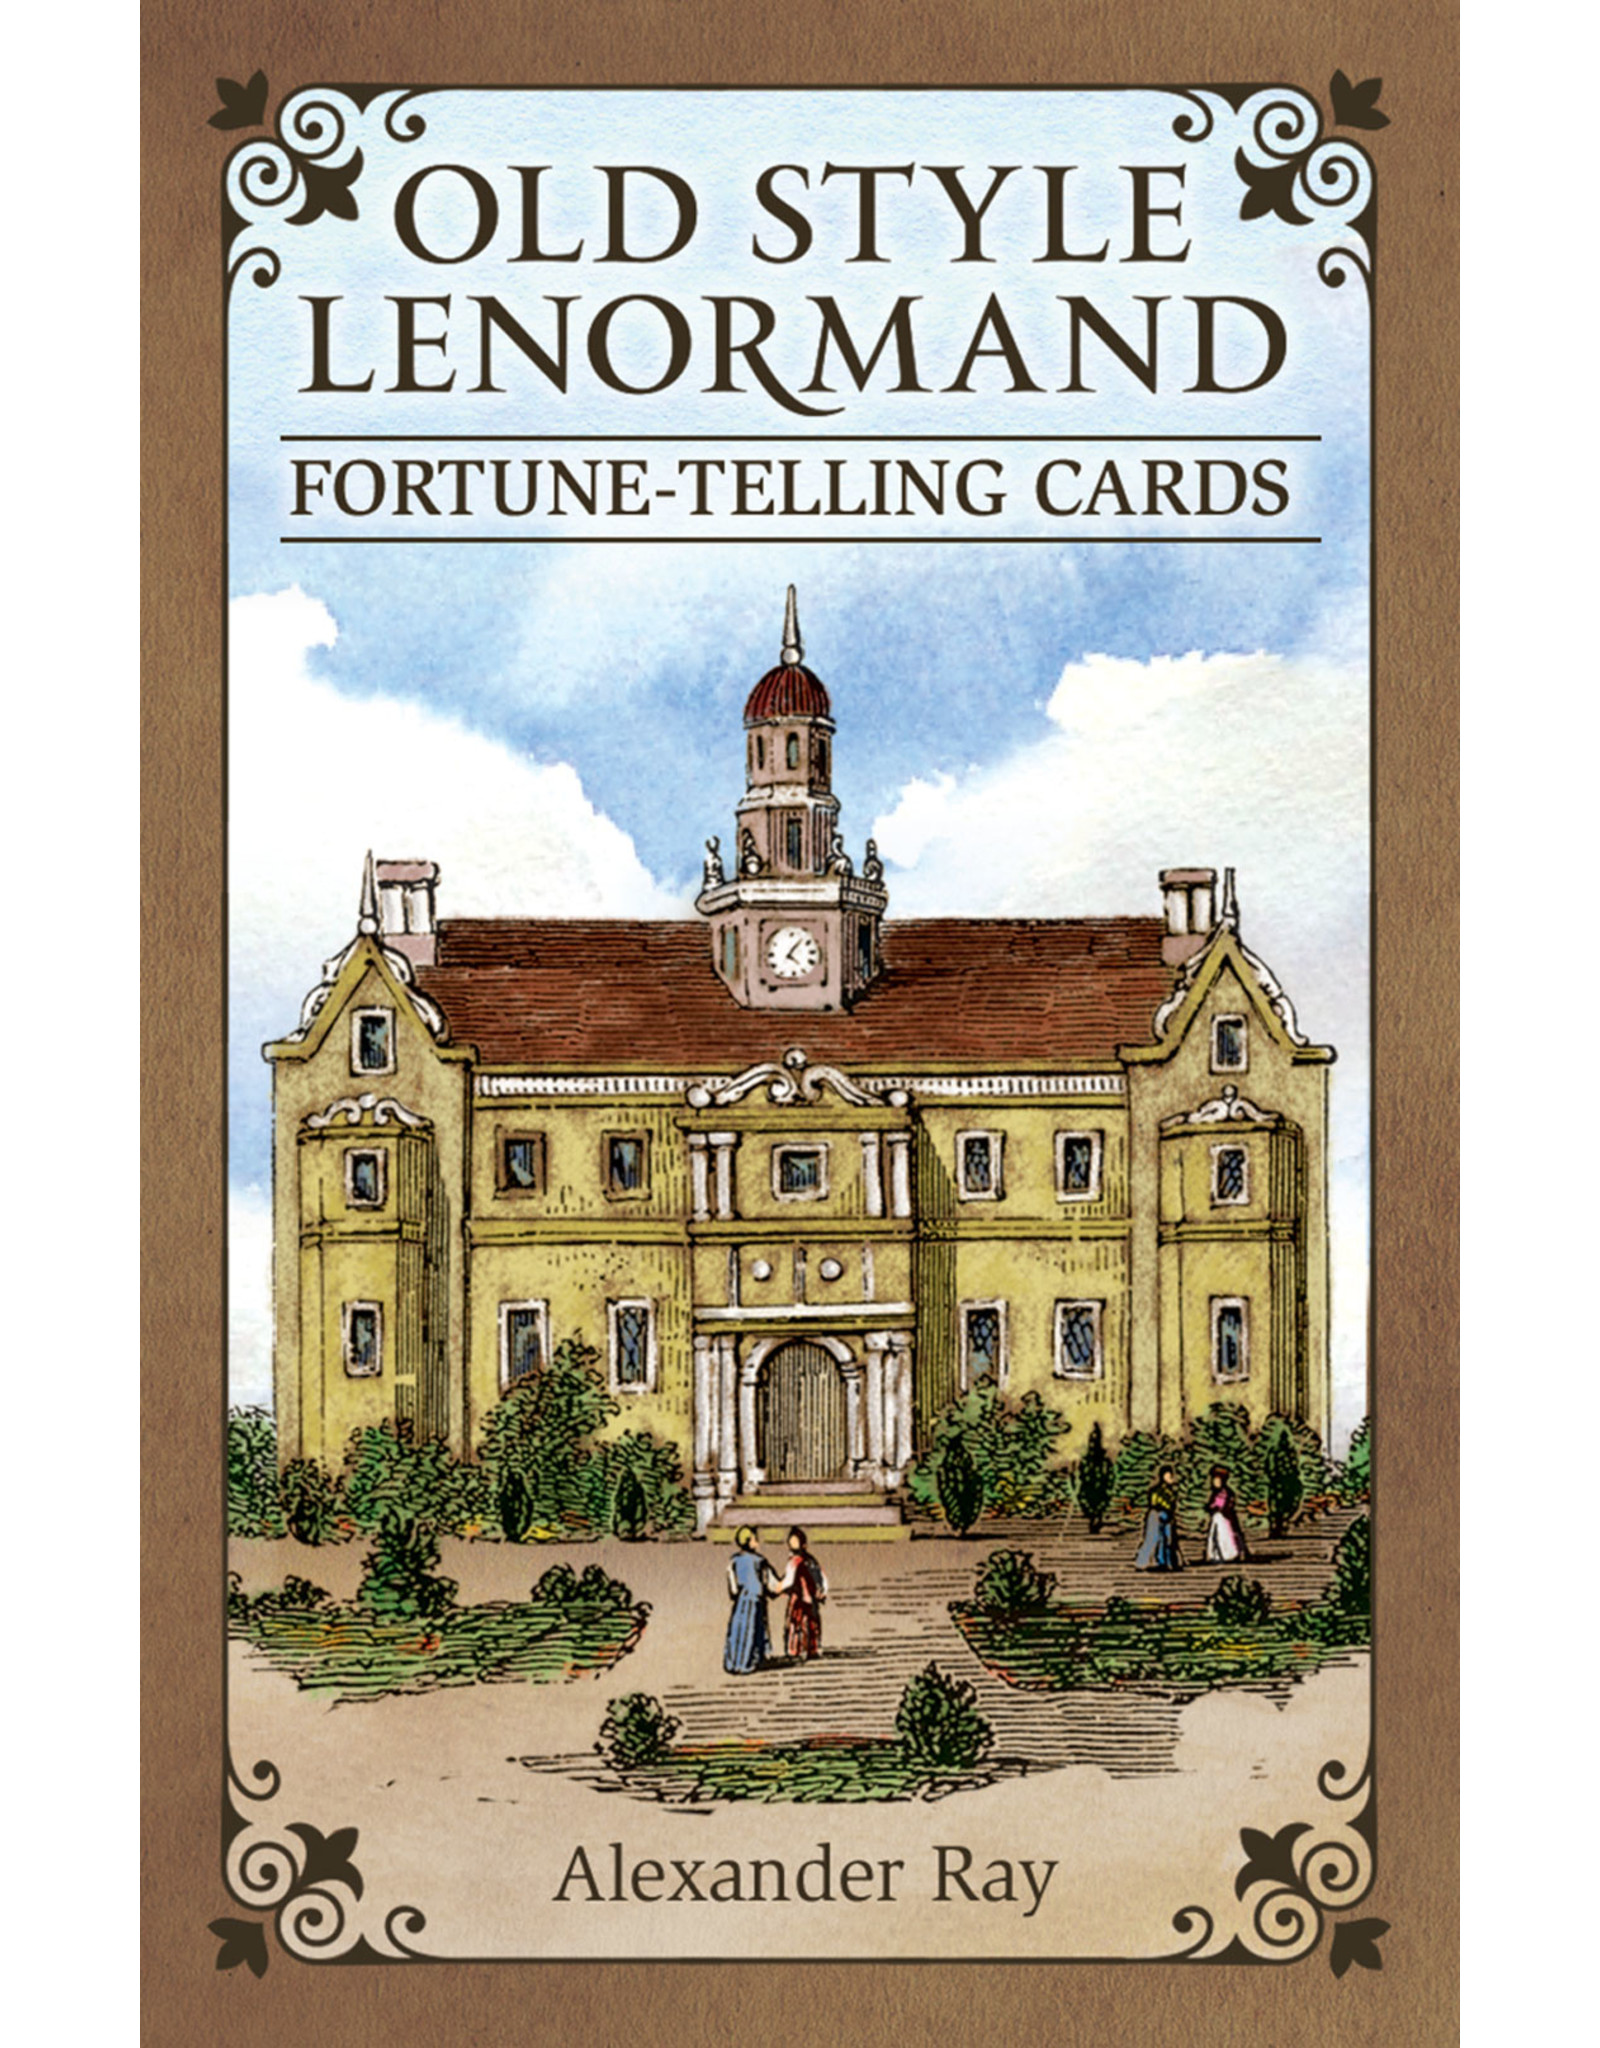 Old Style Lenormand: Fortune-Telling Cards